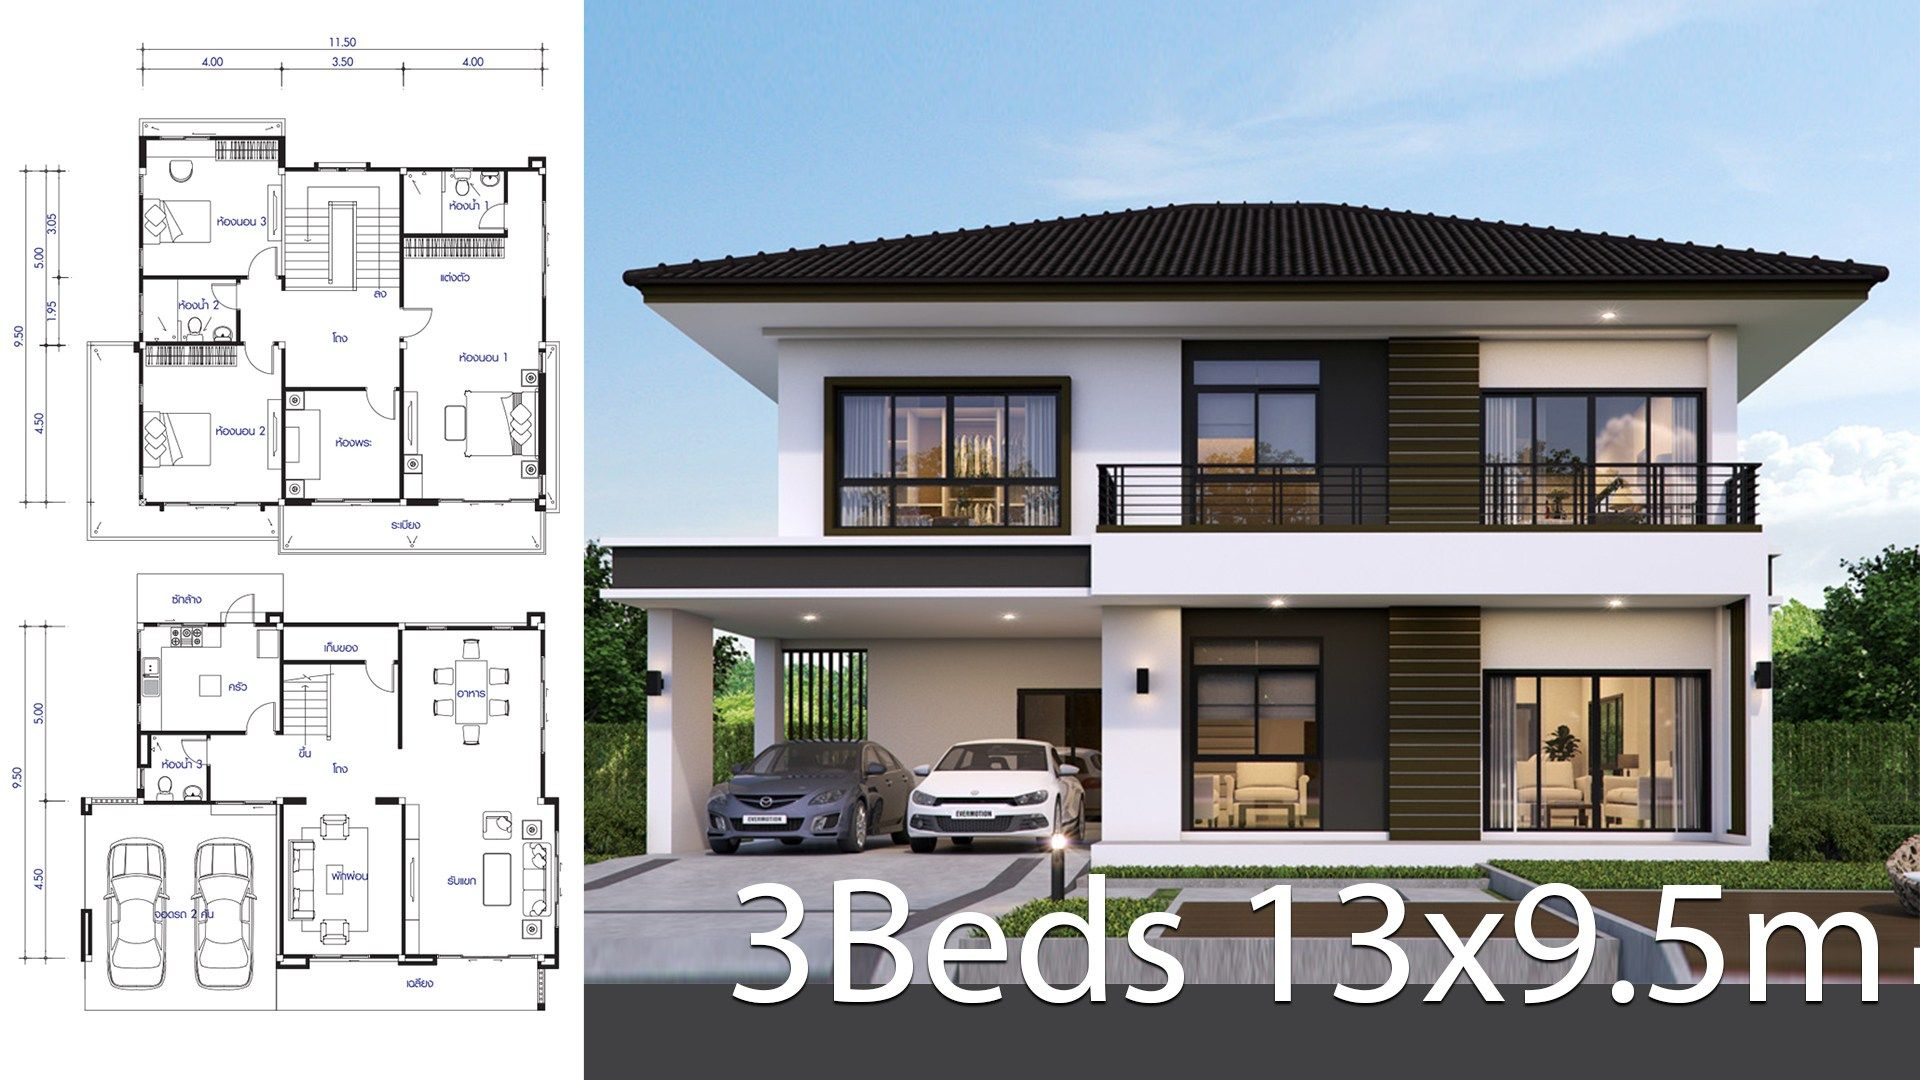 House design plan 13x9.5m with 3 bedrooms (With images ...